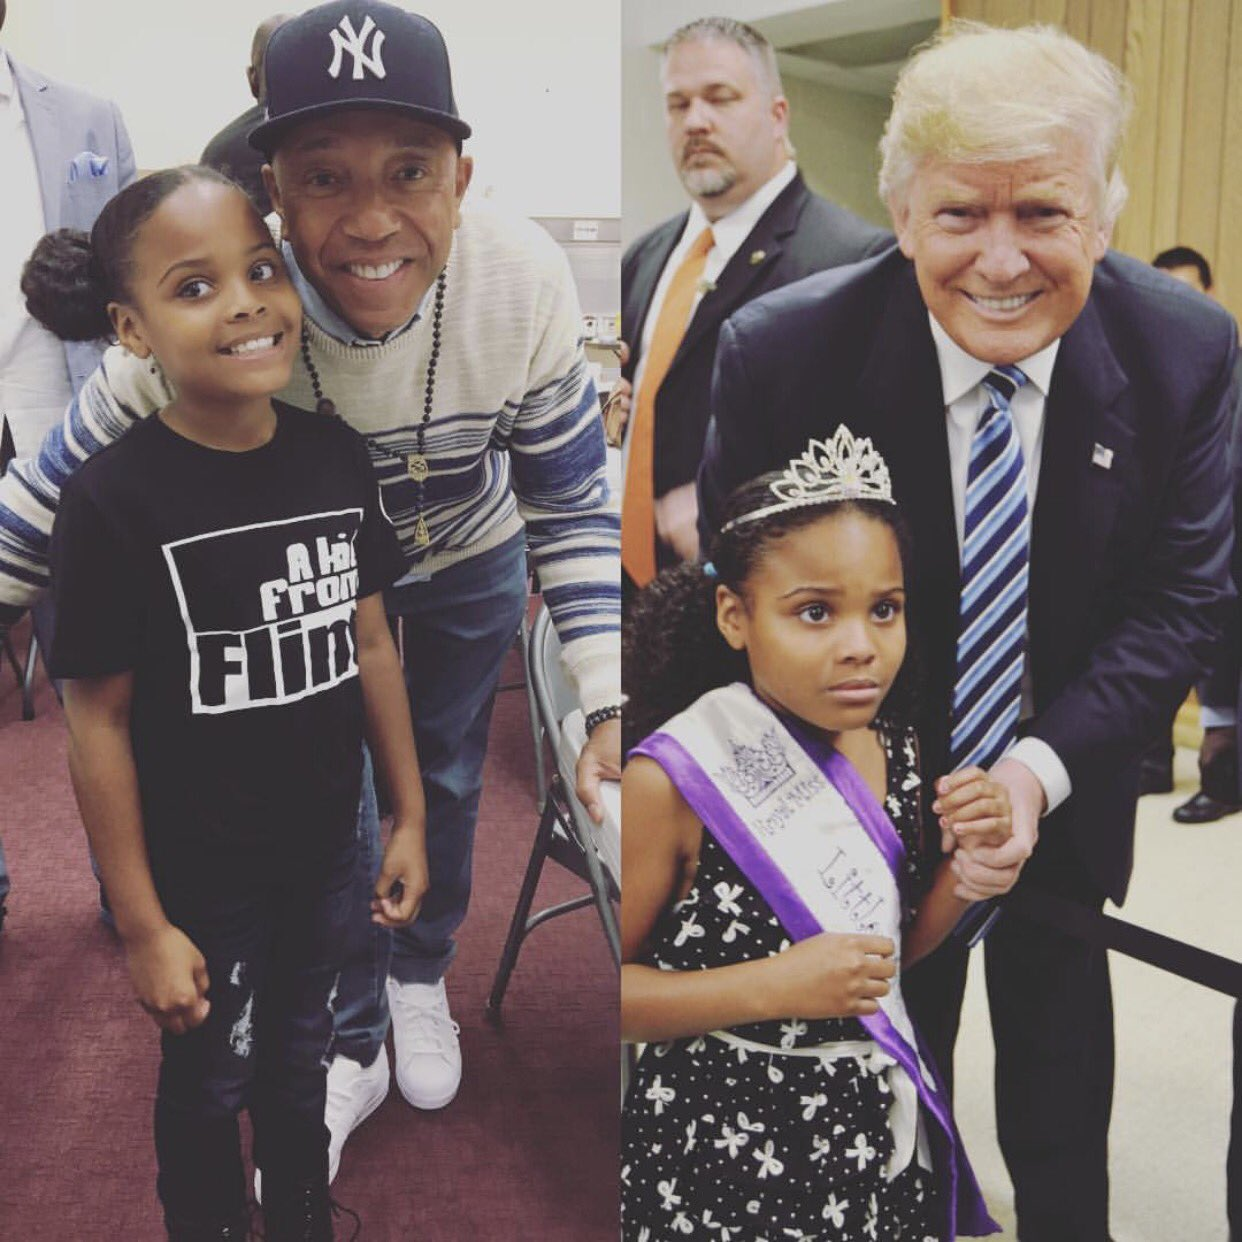 Too bad she can't vote, but her momma can! :-). Lil miss Flint Smiling, even though the state poisoned her! https://t.co/Y58hKYcAVU